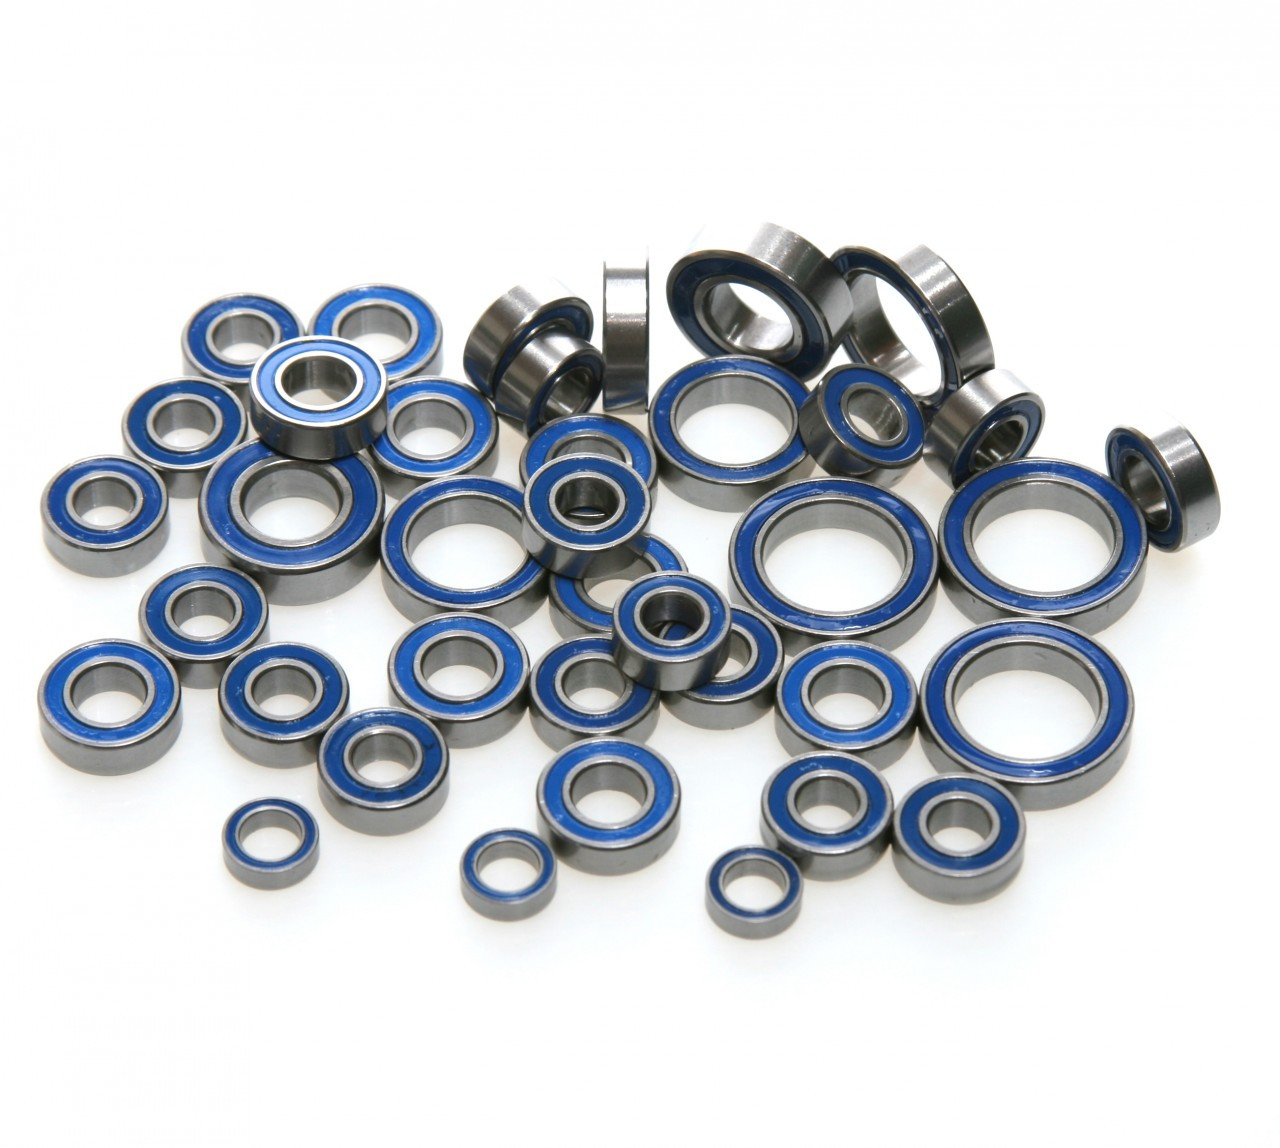 Traxxas Revo Classic full replacement bearing kit.  Gives you all the bearings for a full tear-down!